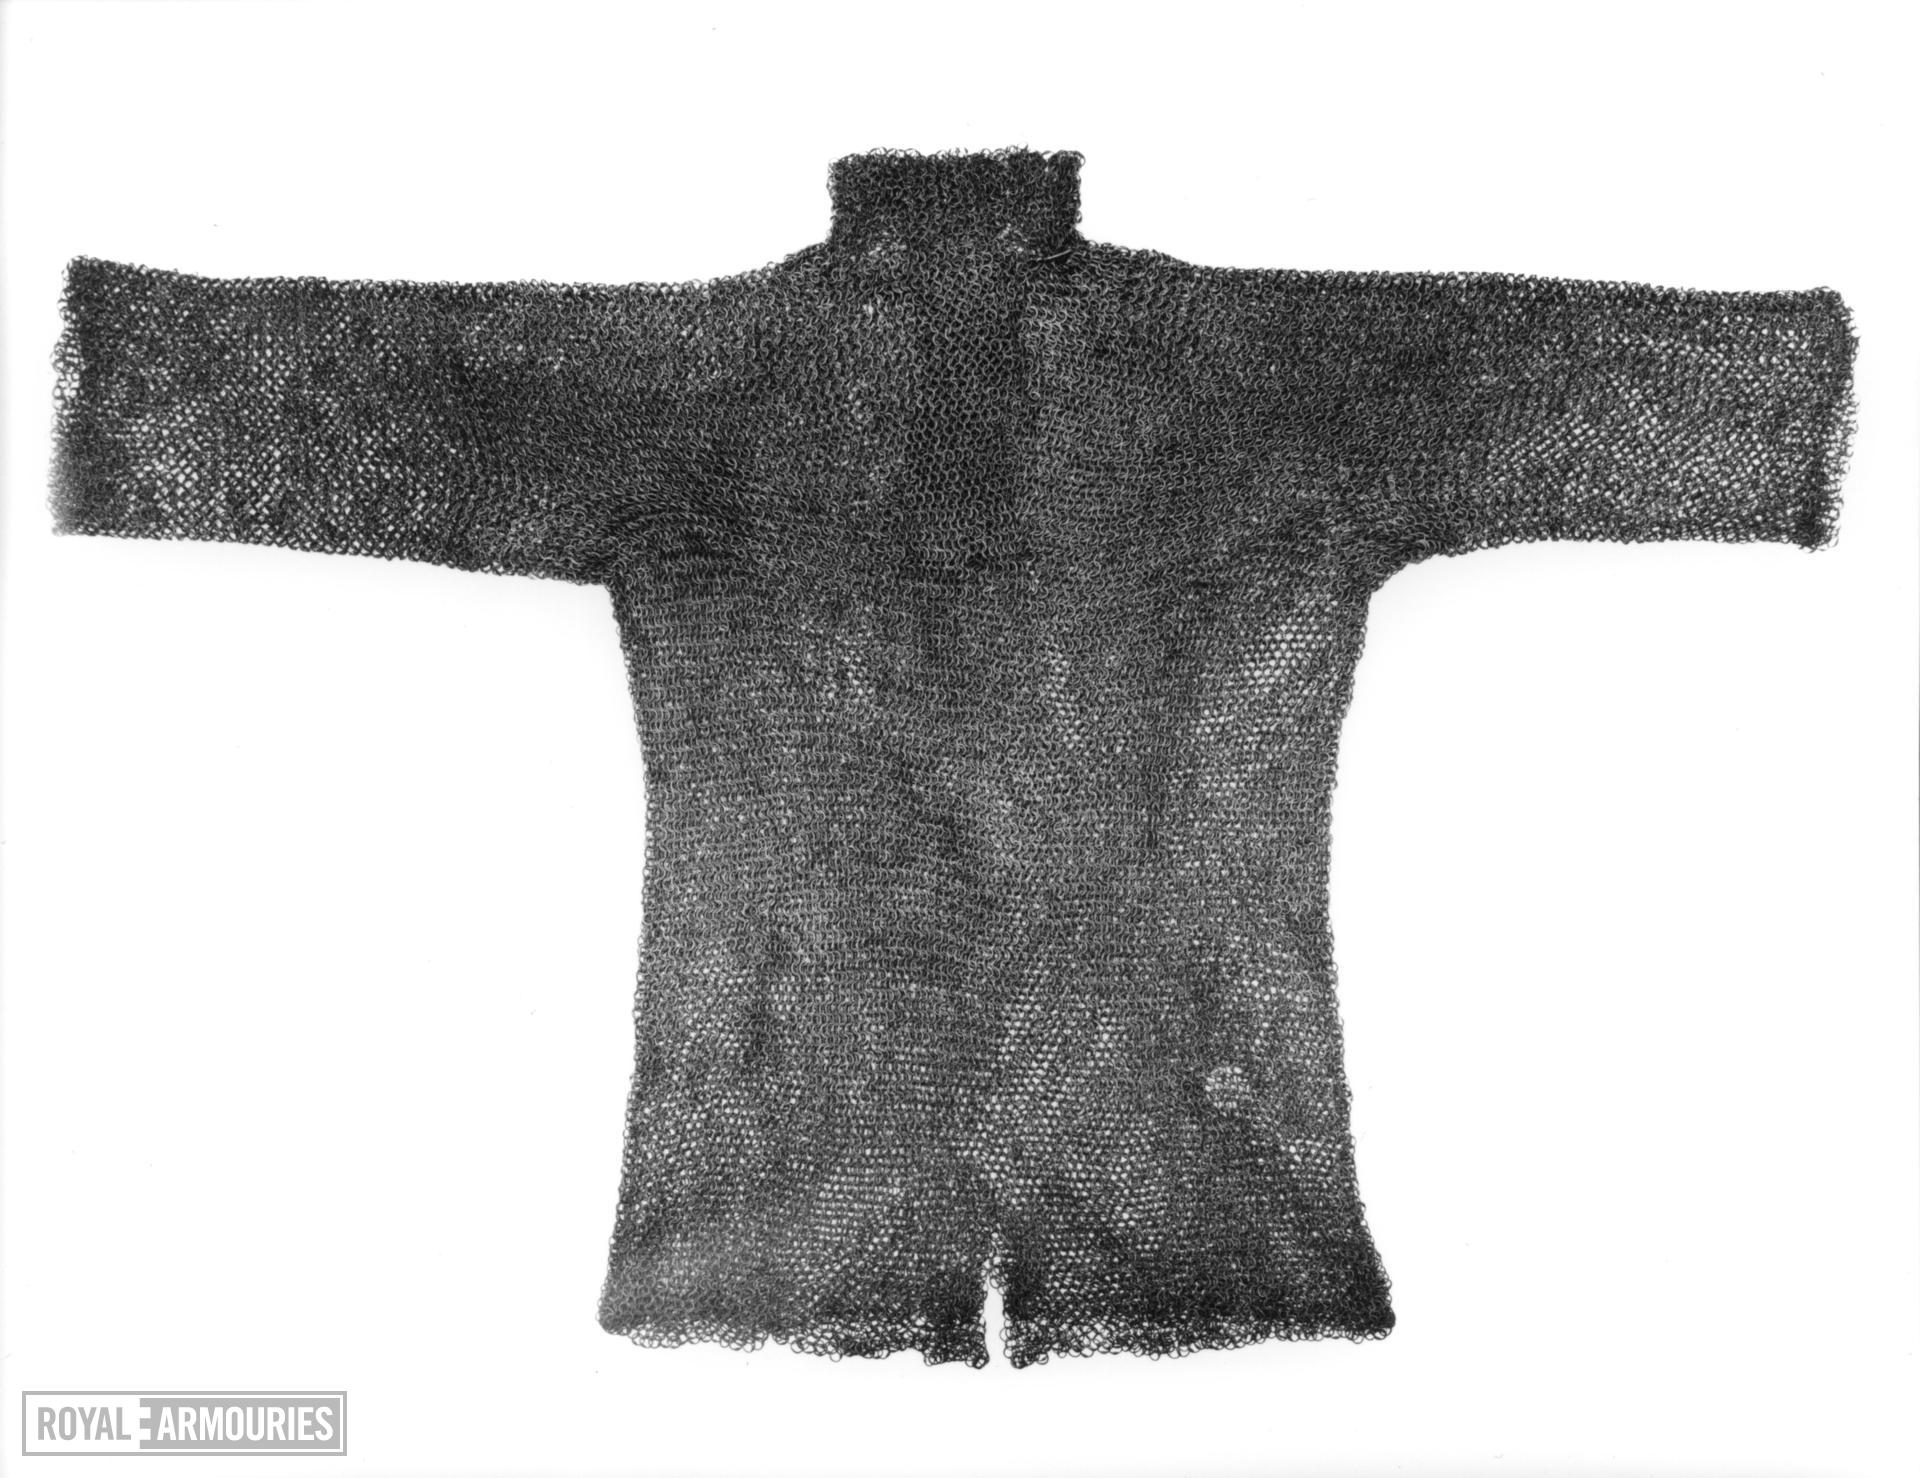 Mail shirt. European, 15th century (III.3)